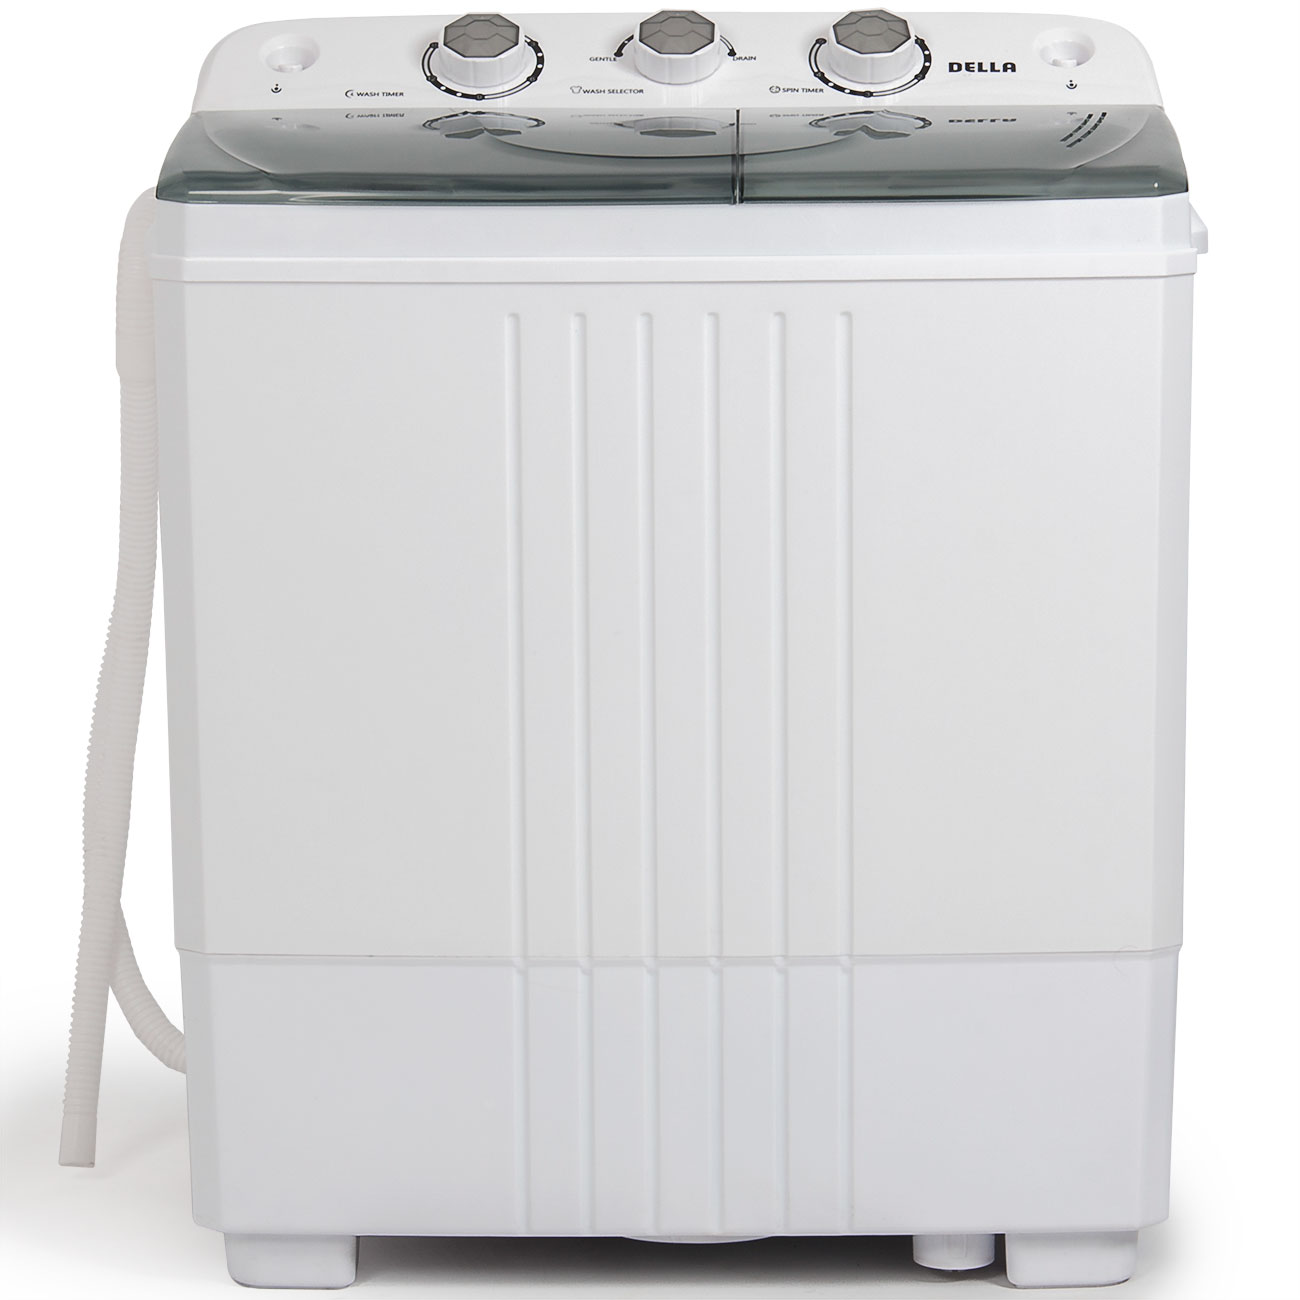 wash machine with dryer